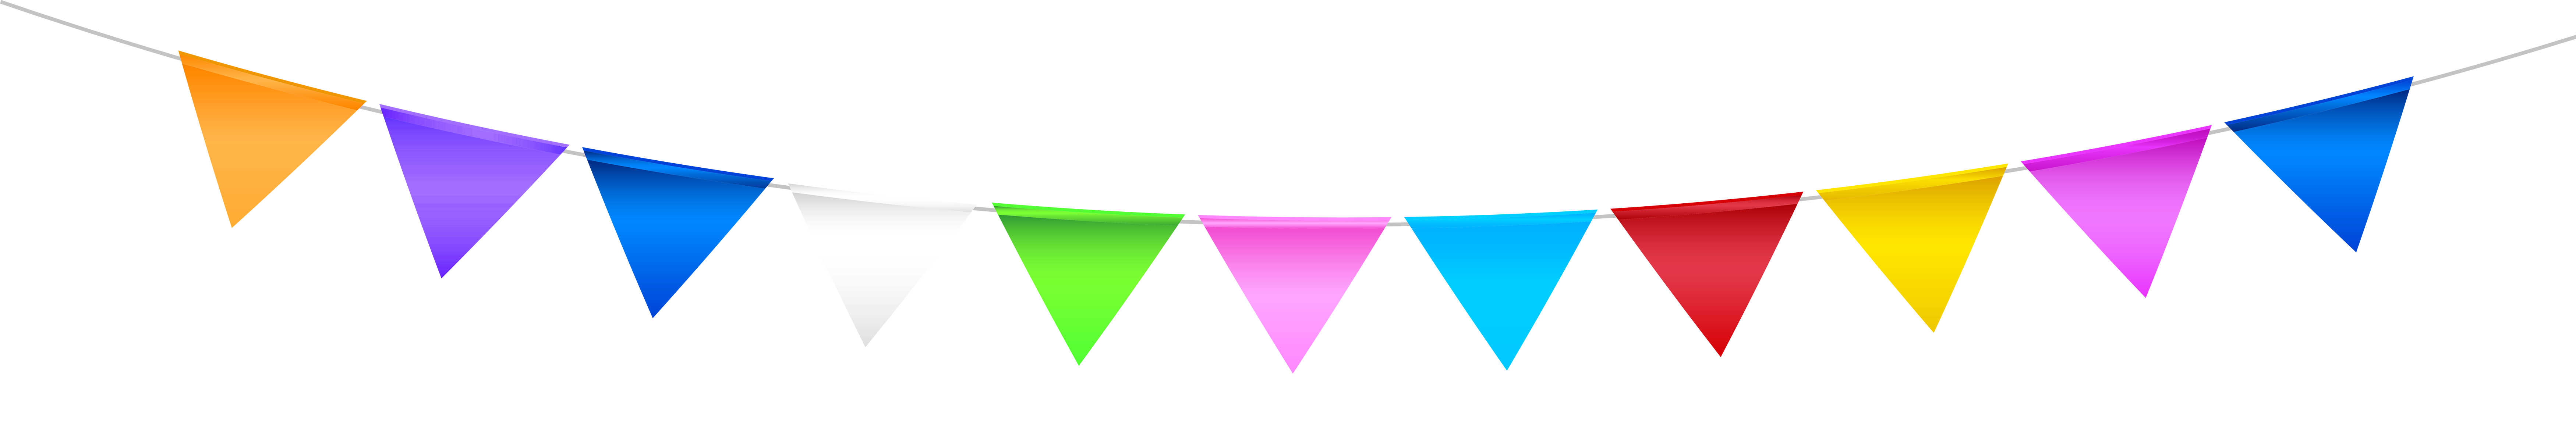 Streamers clipart green. Transparent colorful streamer png